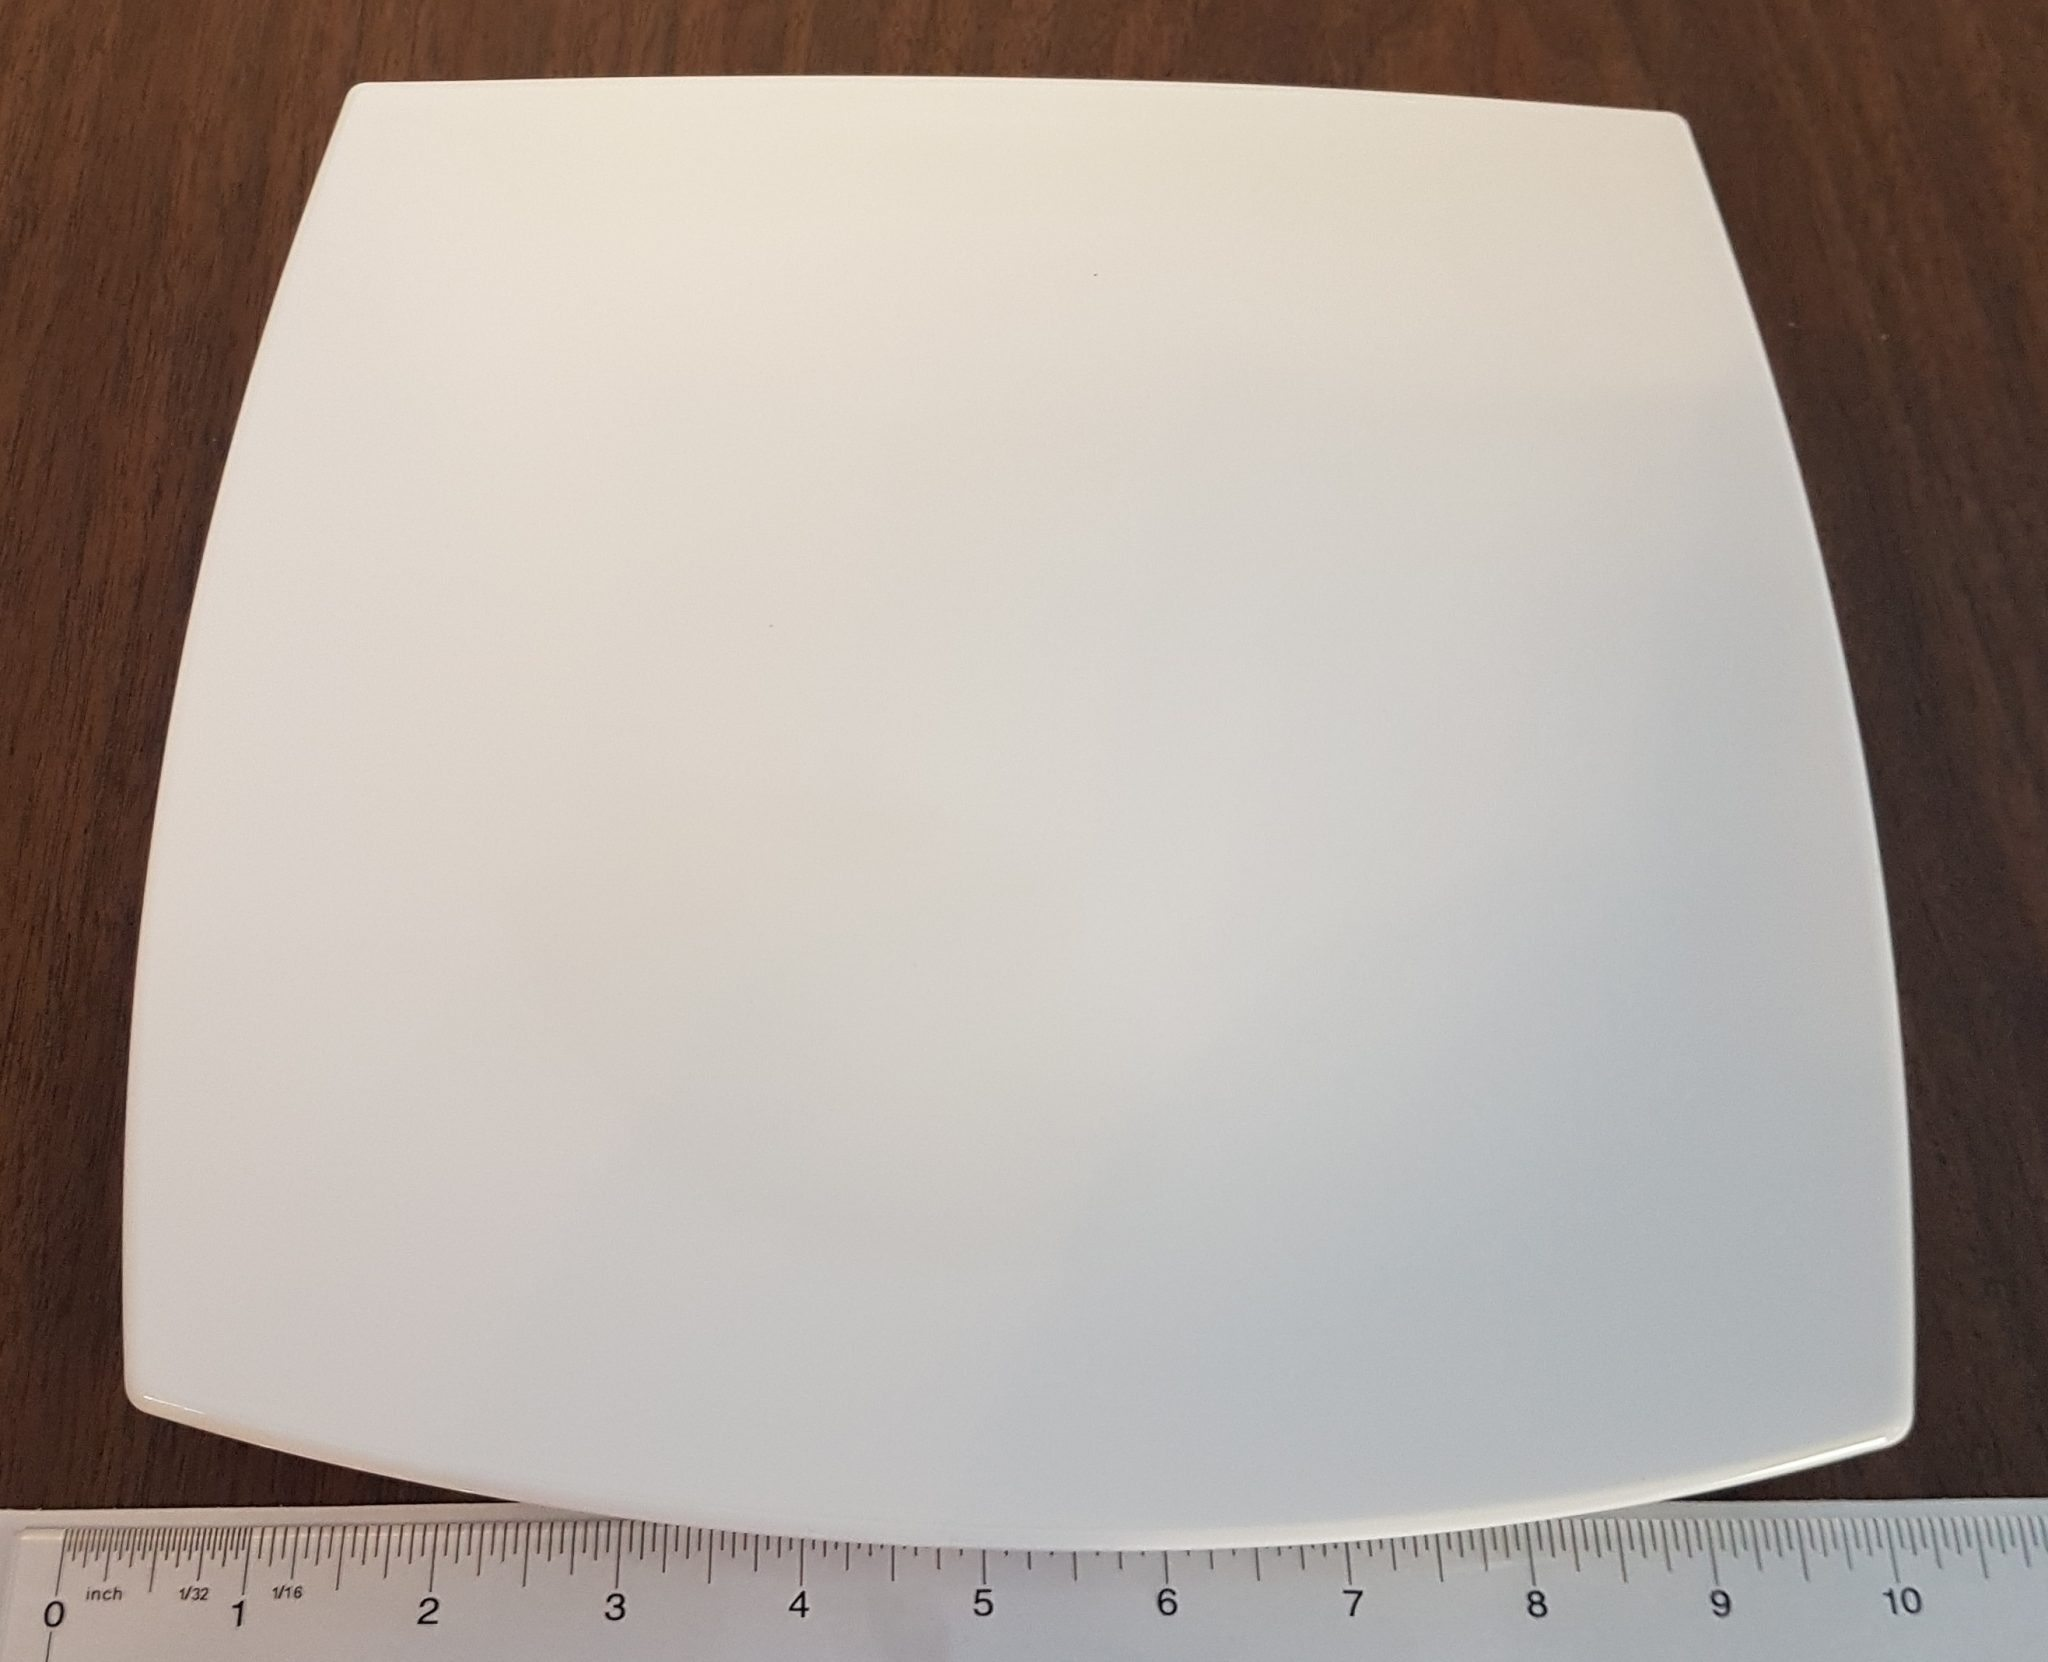 Large_Dinner_Plate_10_inch